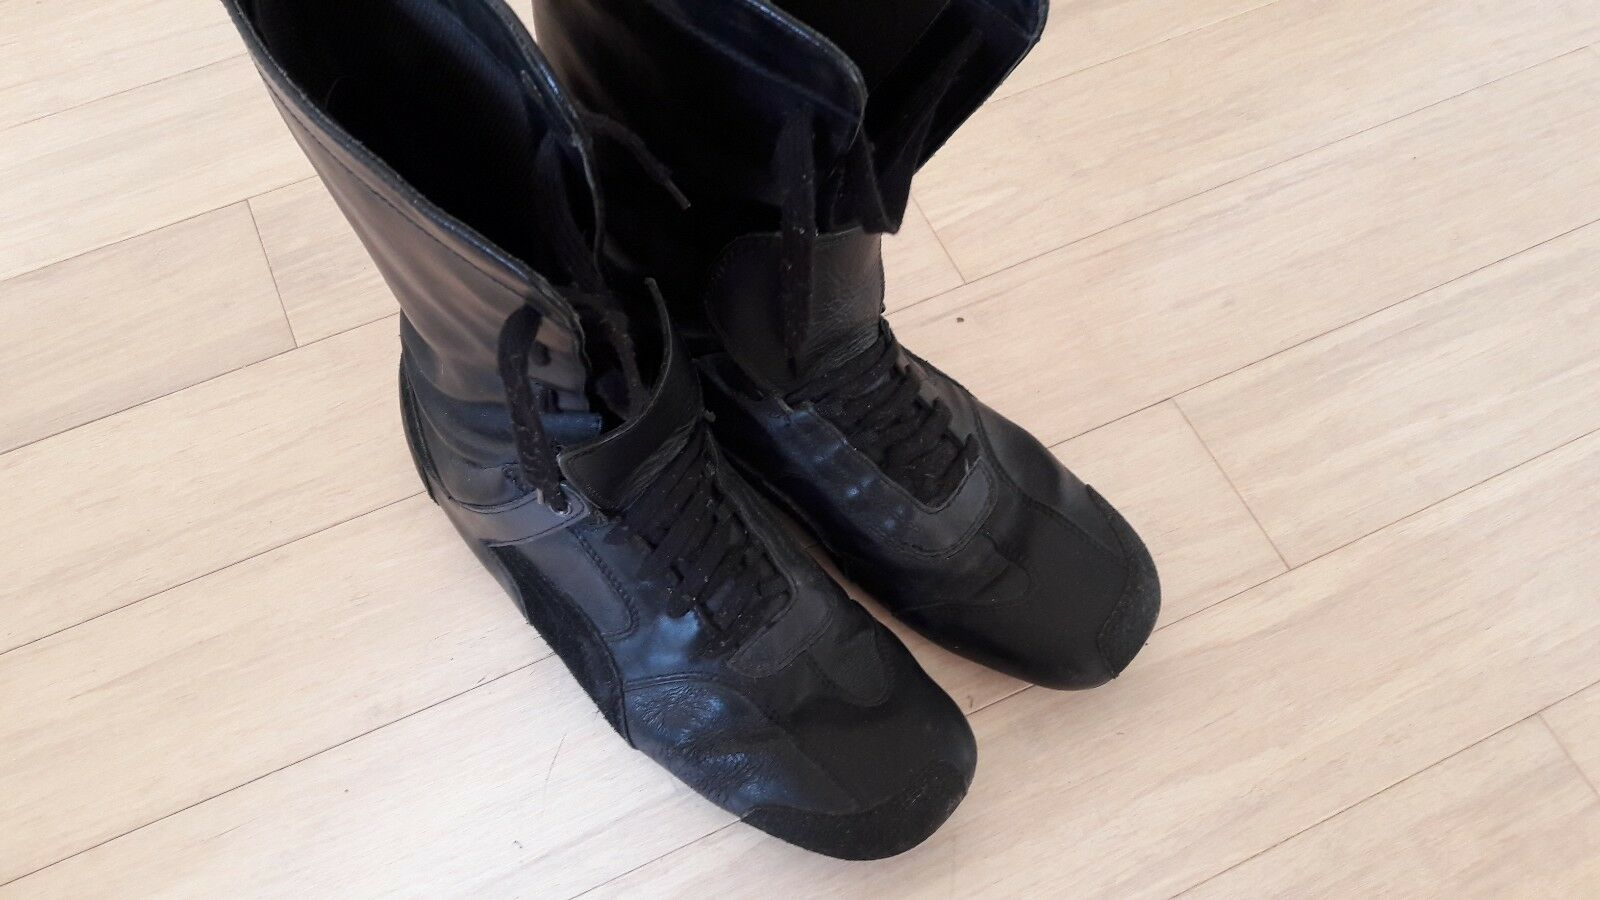 Puma By Neil Barrett Noir Leather Bottes RARE VINTAGE / Made In Italy